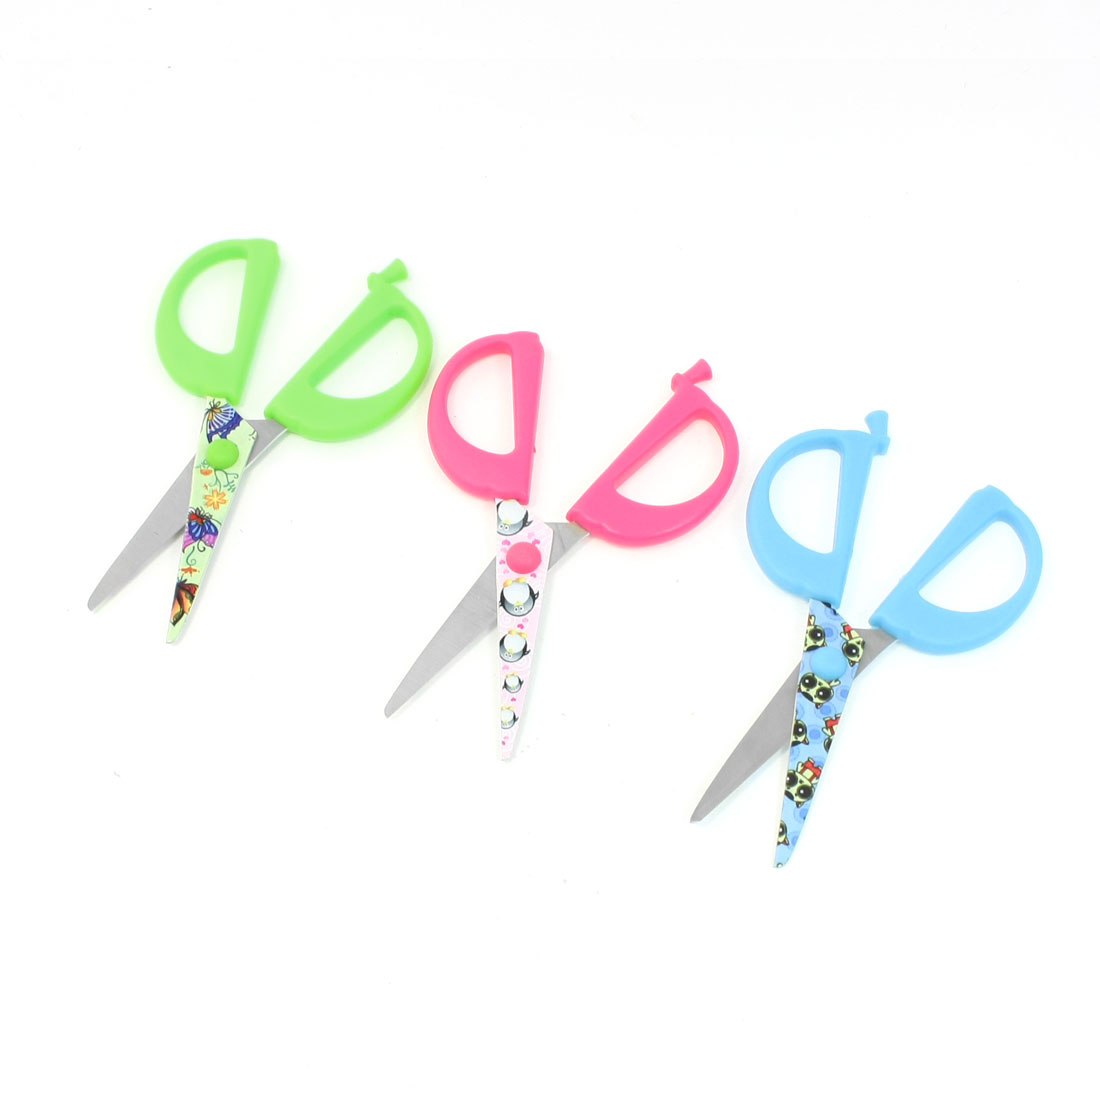 3 Pcs Blue Fuchsia Green Stainless Steel Blade Scissors for Children